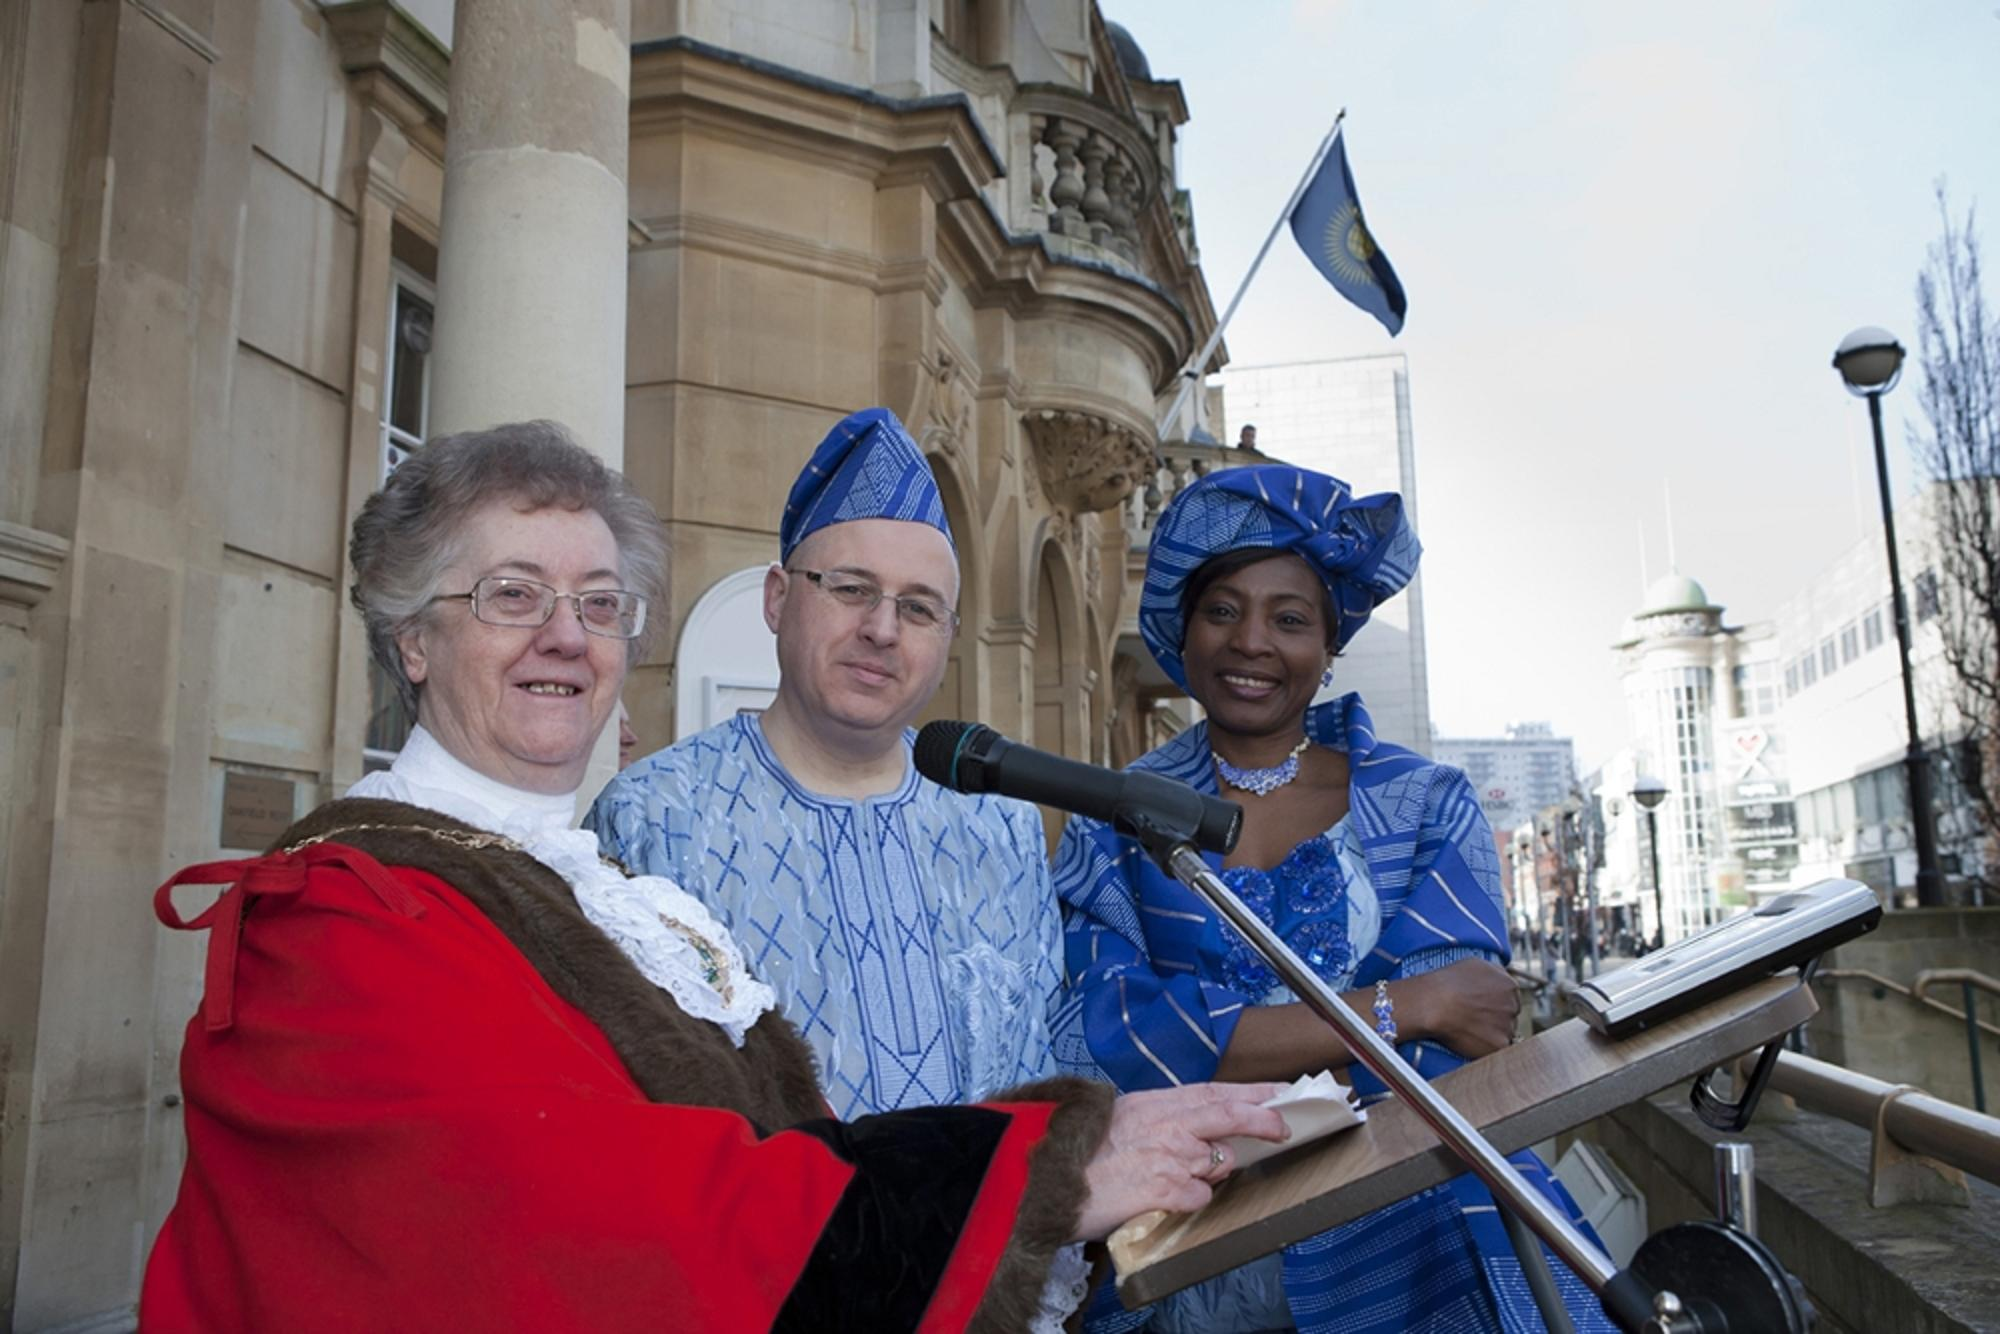 Redbridge Mayor Cllr Felicity Banks with Redbridge Council leader Cllr Keith Prince and his wife Tayo Prince, both in traditional Nigerian Yoruba dress